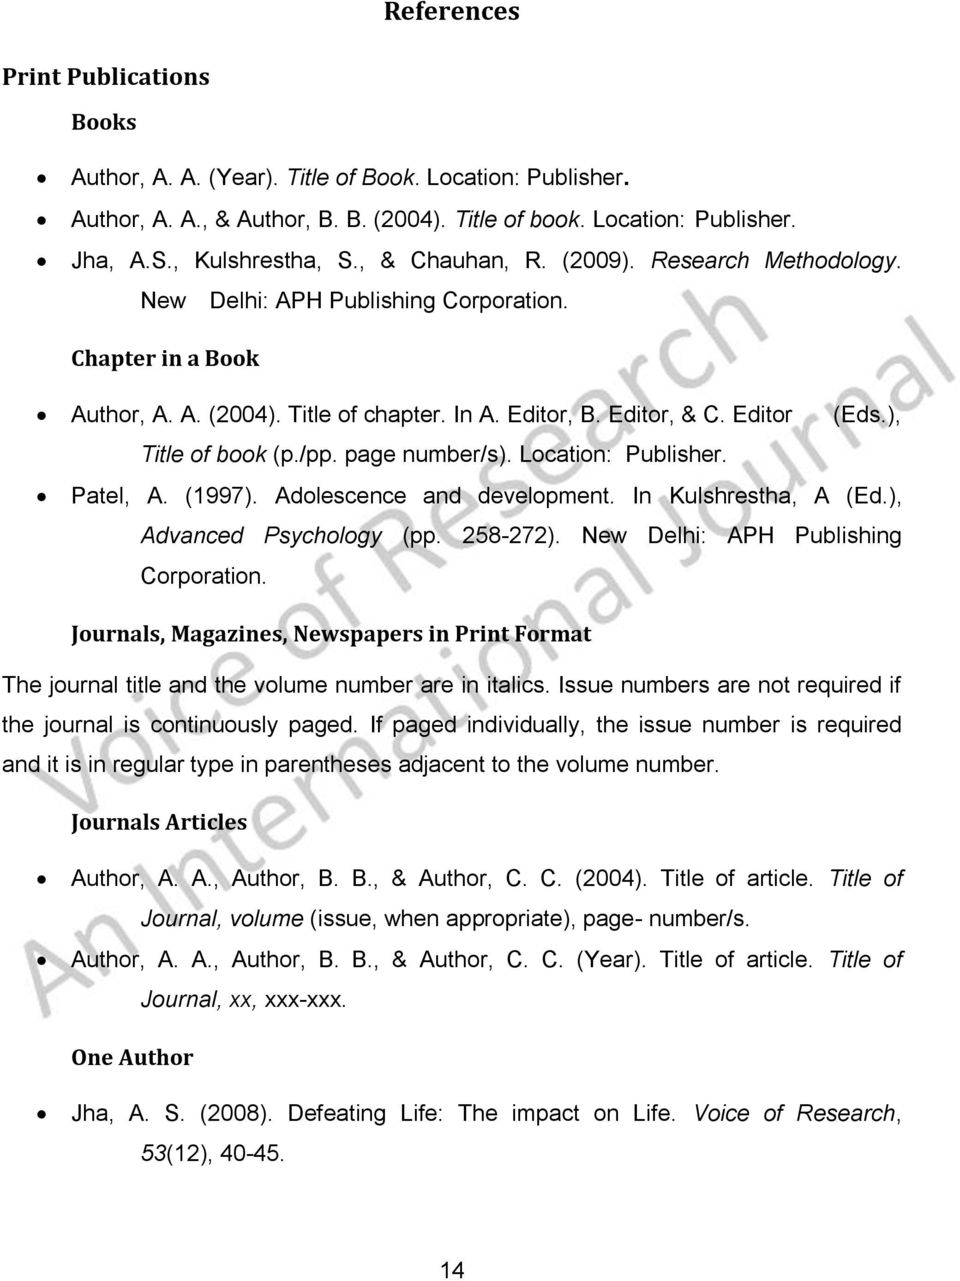 ), Title of book (p./pp. page number/s). Location: Publisher. Patel, A. (1997). Adolescence and development. In Kulshrestha, A (Ed.), Advanced Psychology (pp. 258-272).